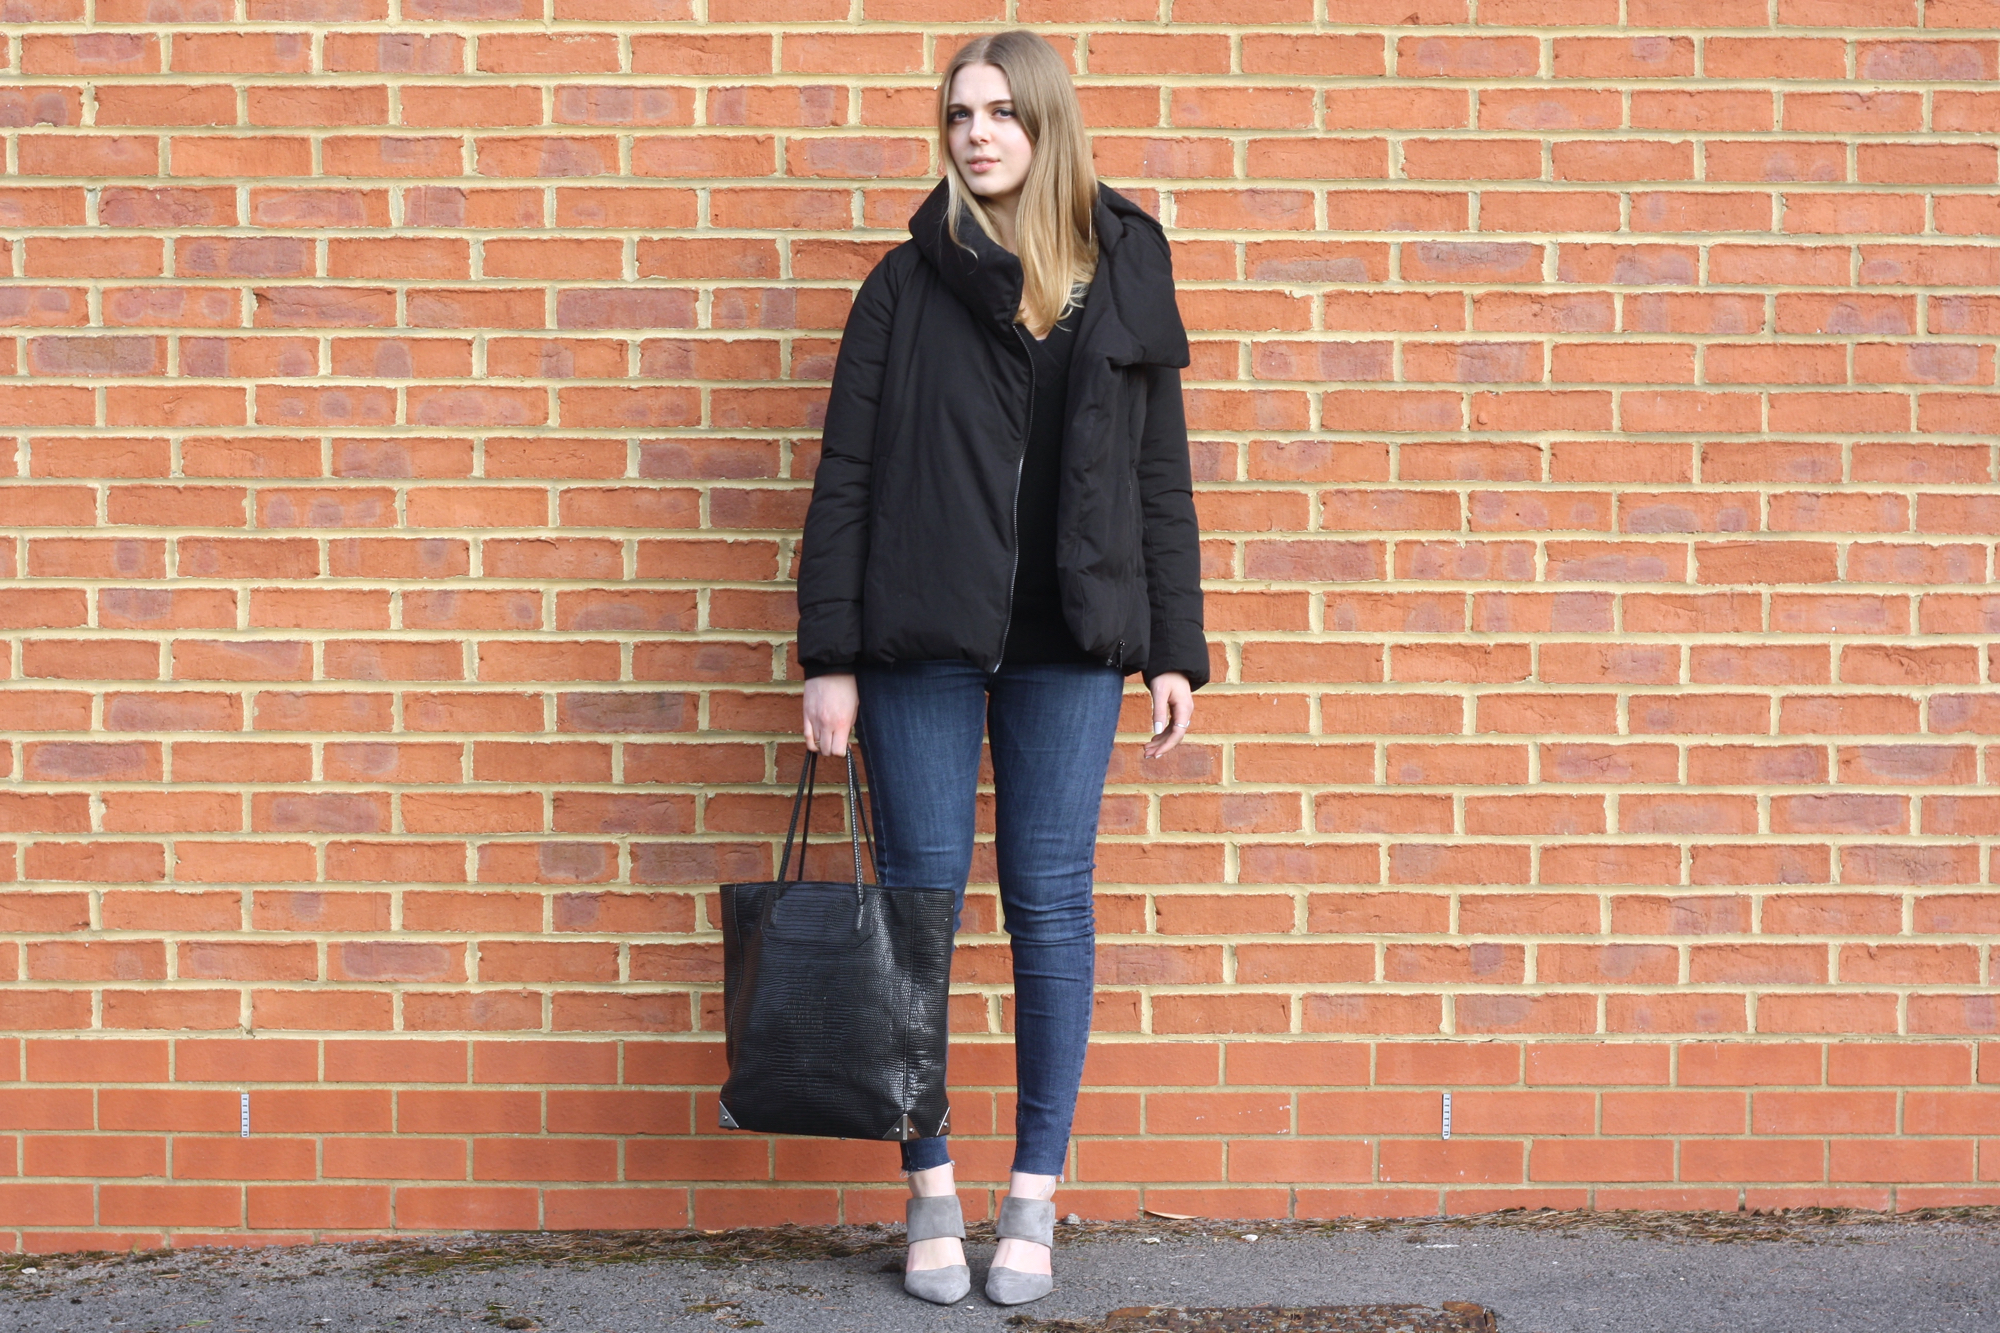 & Other Stories black cashmere jumper, Topshop Jamie blue jeans and Whistles grey suede mules